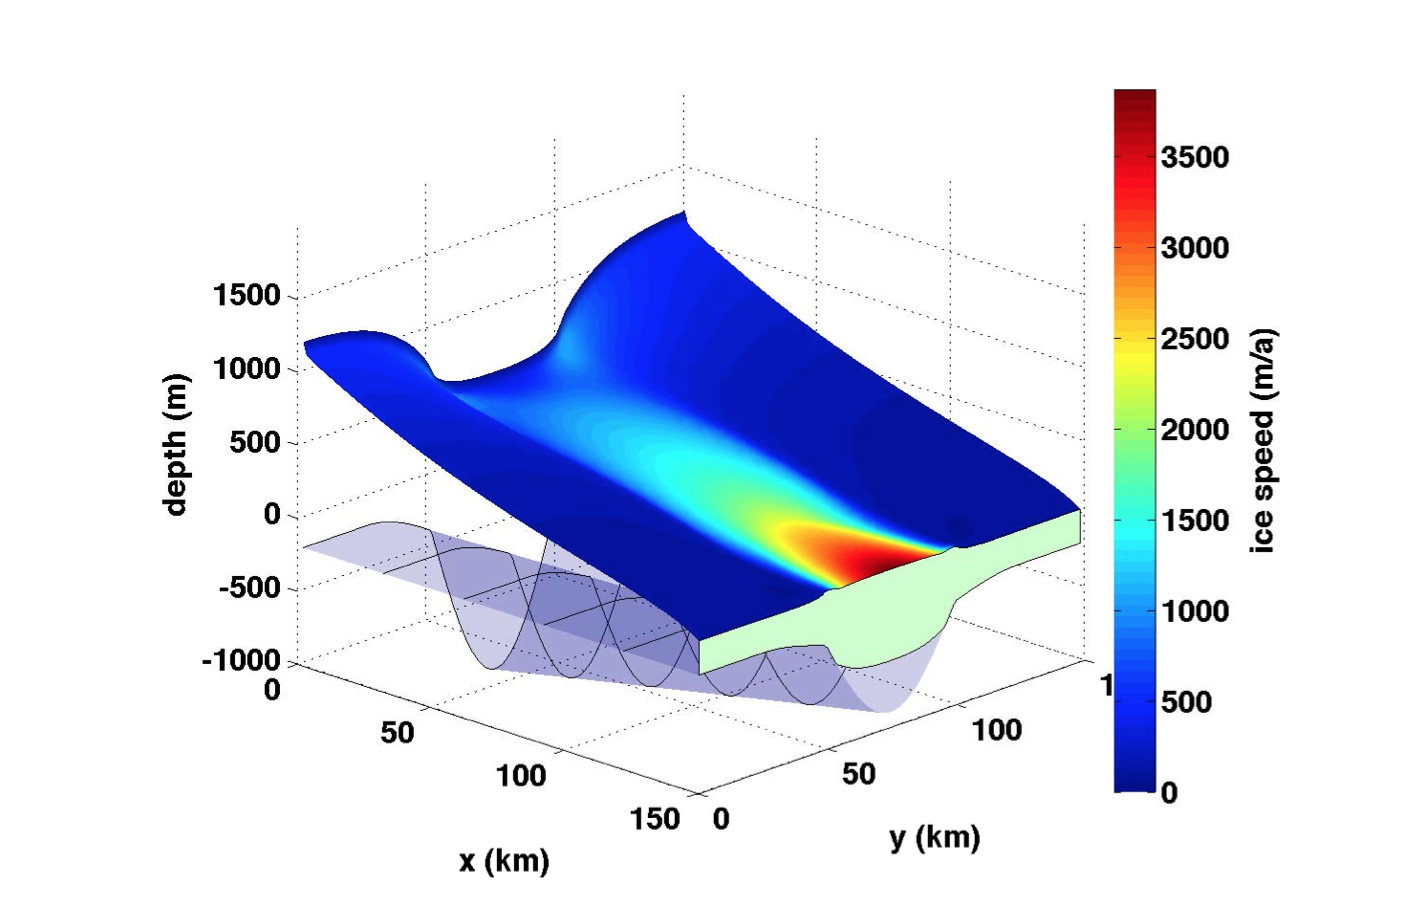 Background steady-state of the ice stream-shelf system from Goldberg et al (2013)